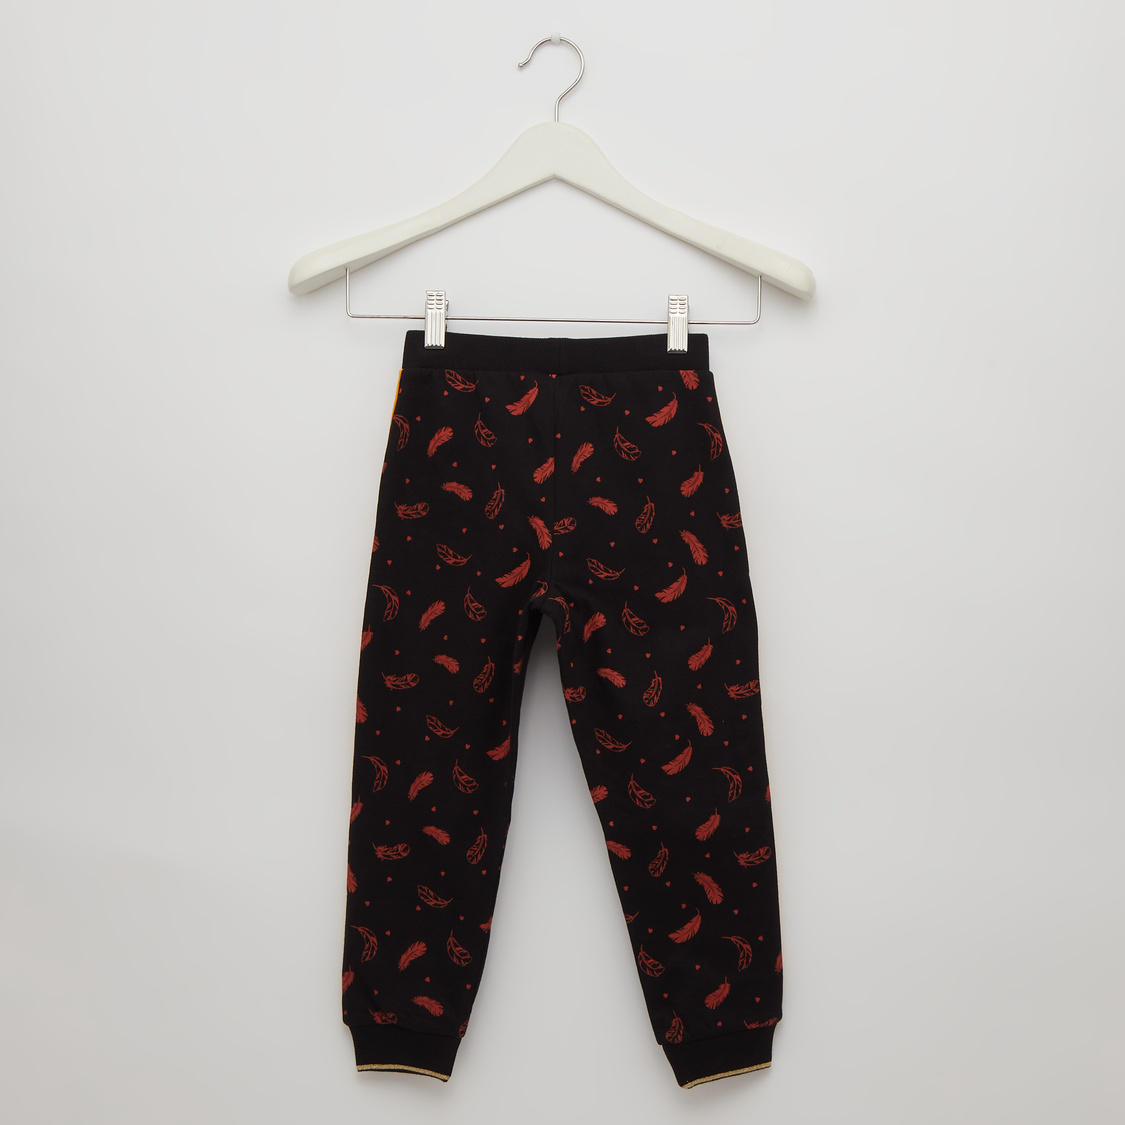 Printed Joggers with Drawstring Closure and Cuffed Ankles